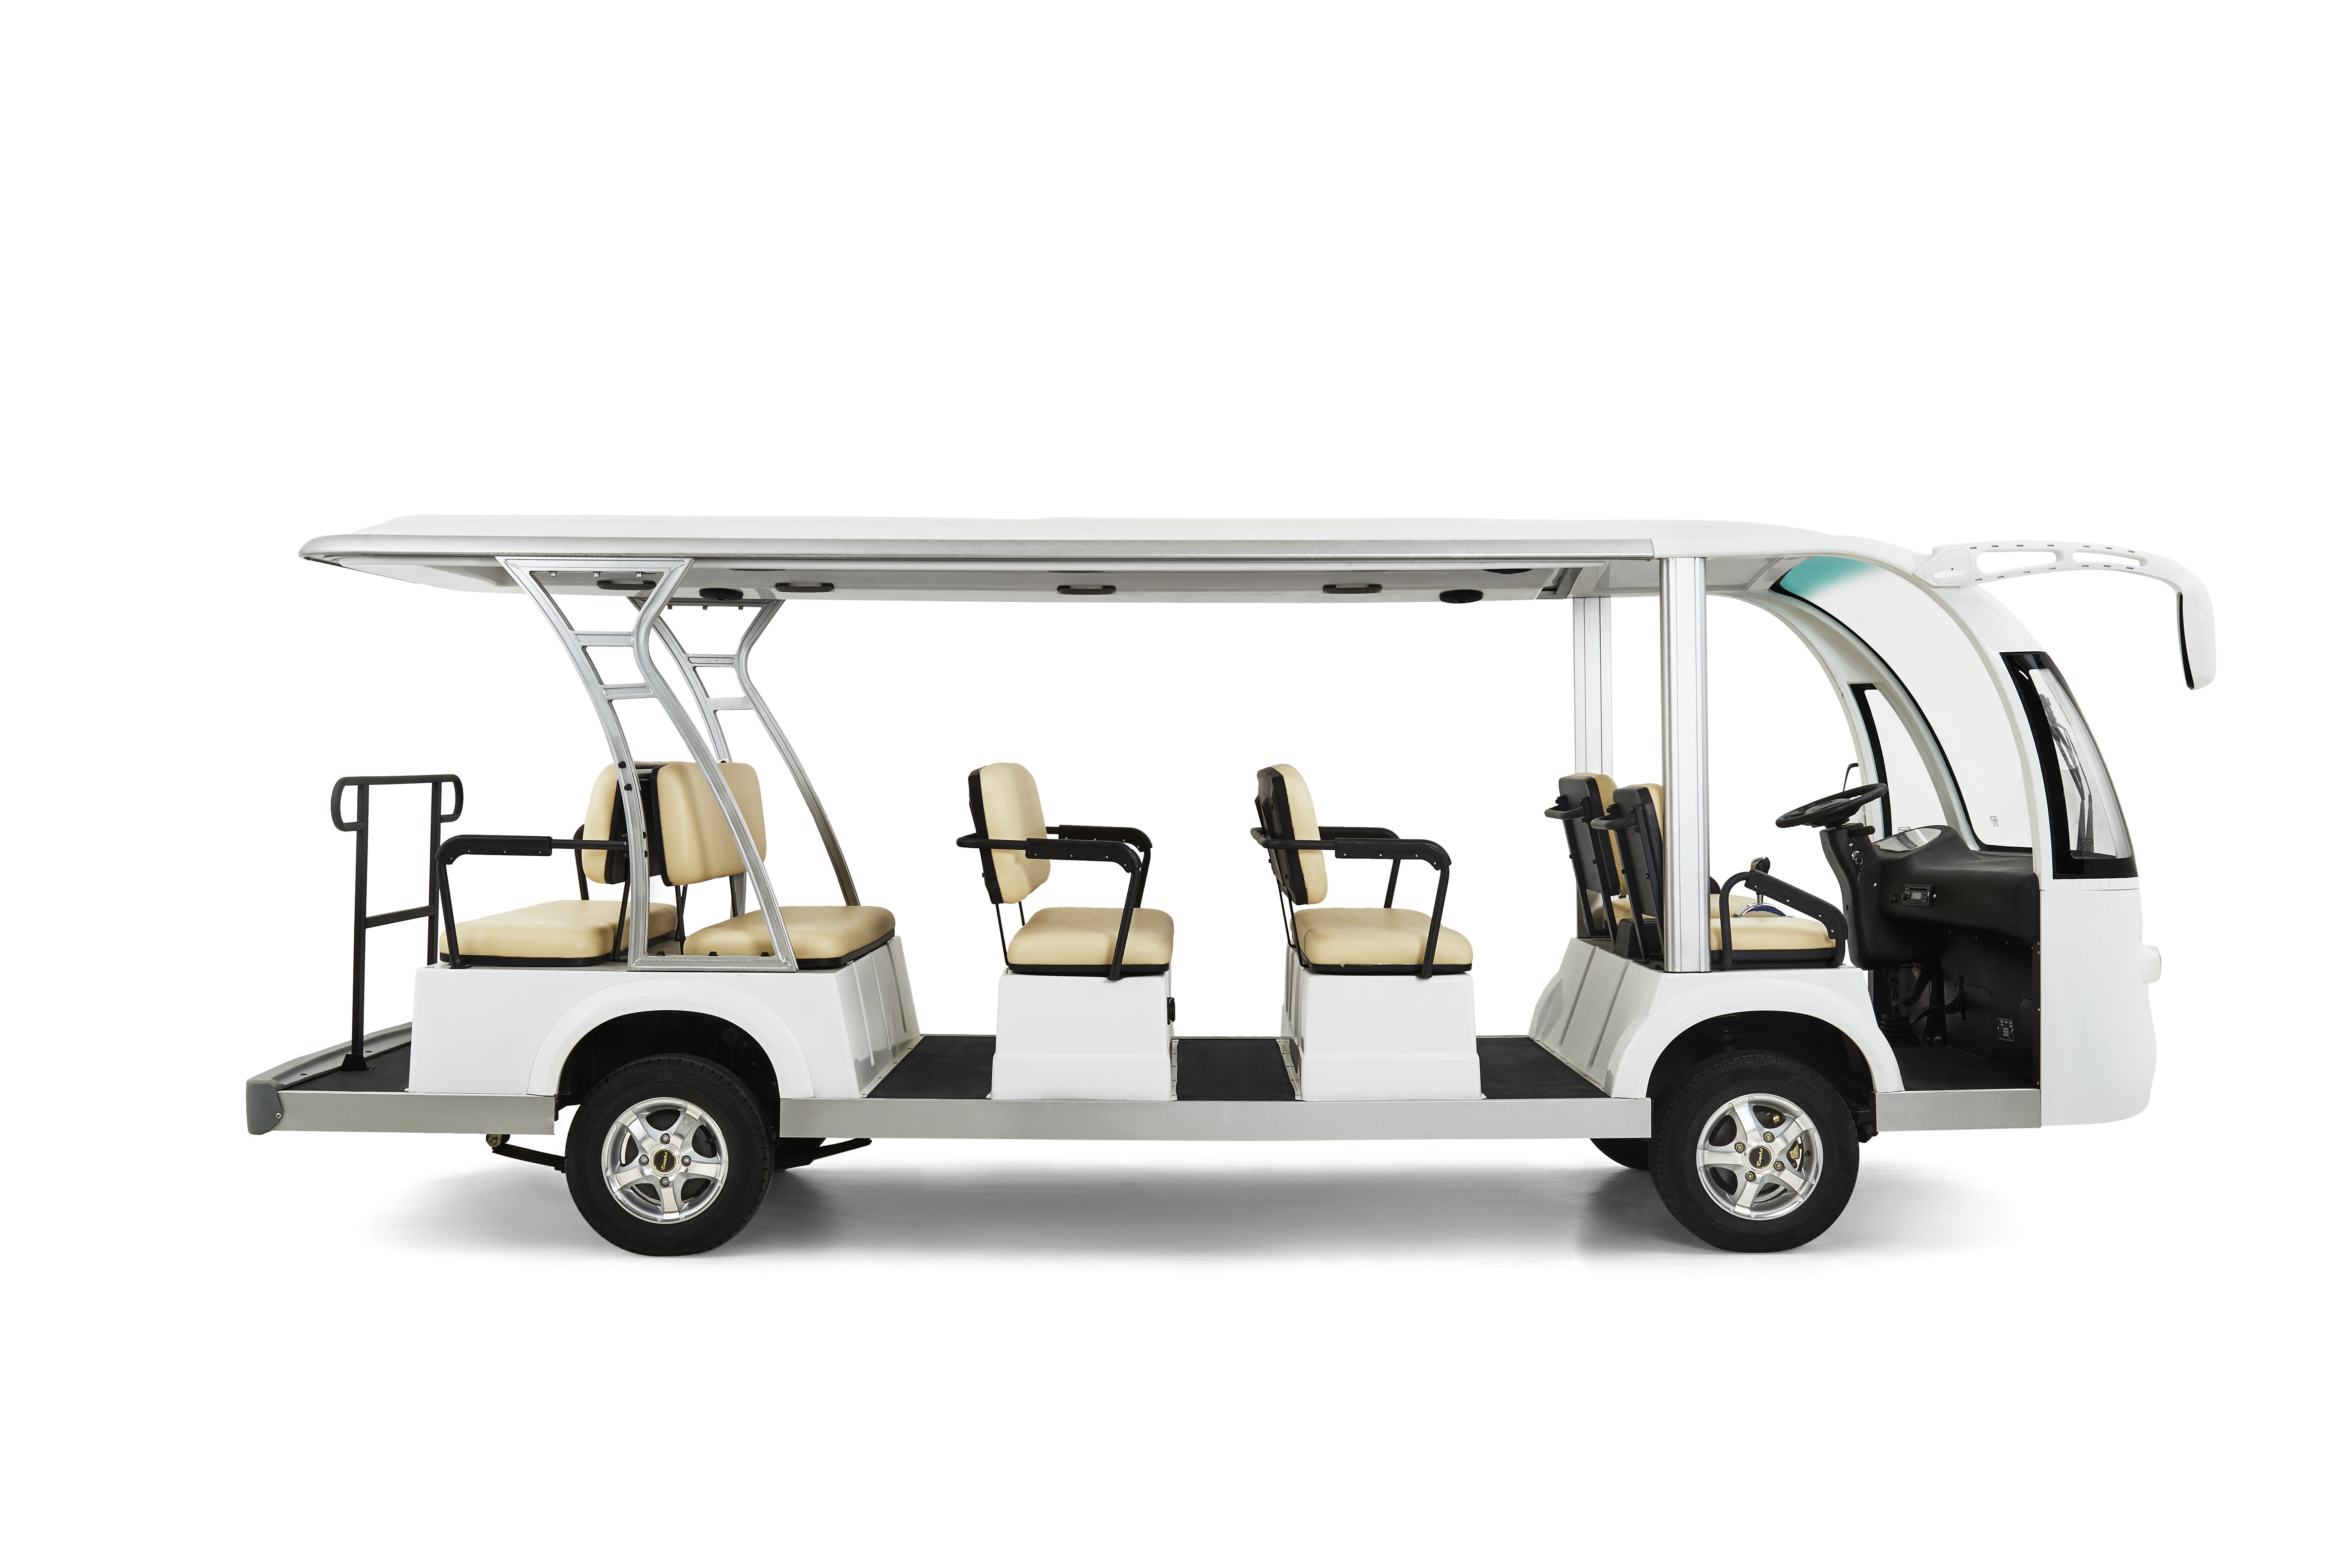 Electrical Street Legal Golf Carts 14 Seater With Radio / Matte White Loaded